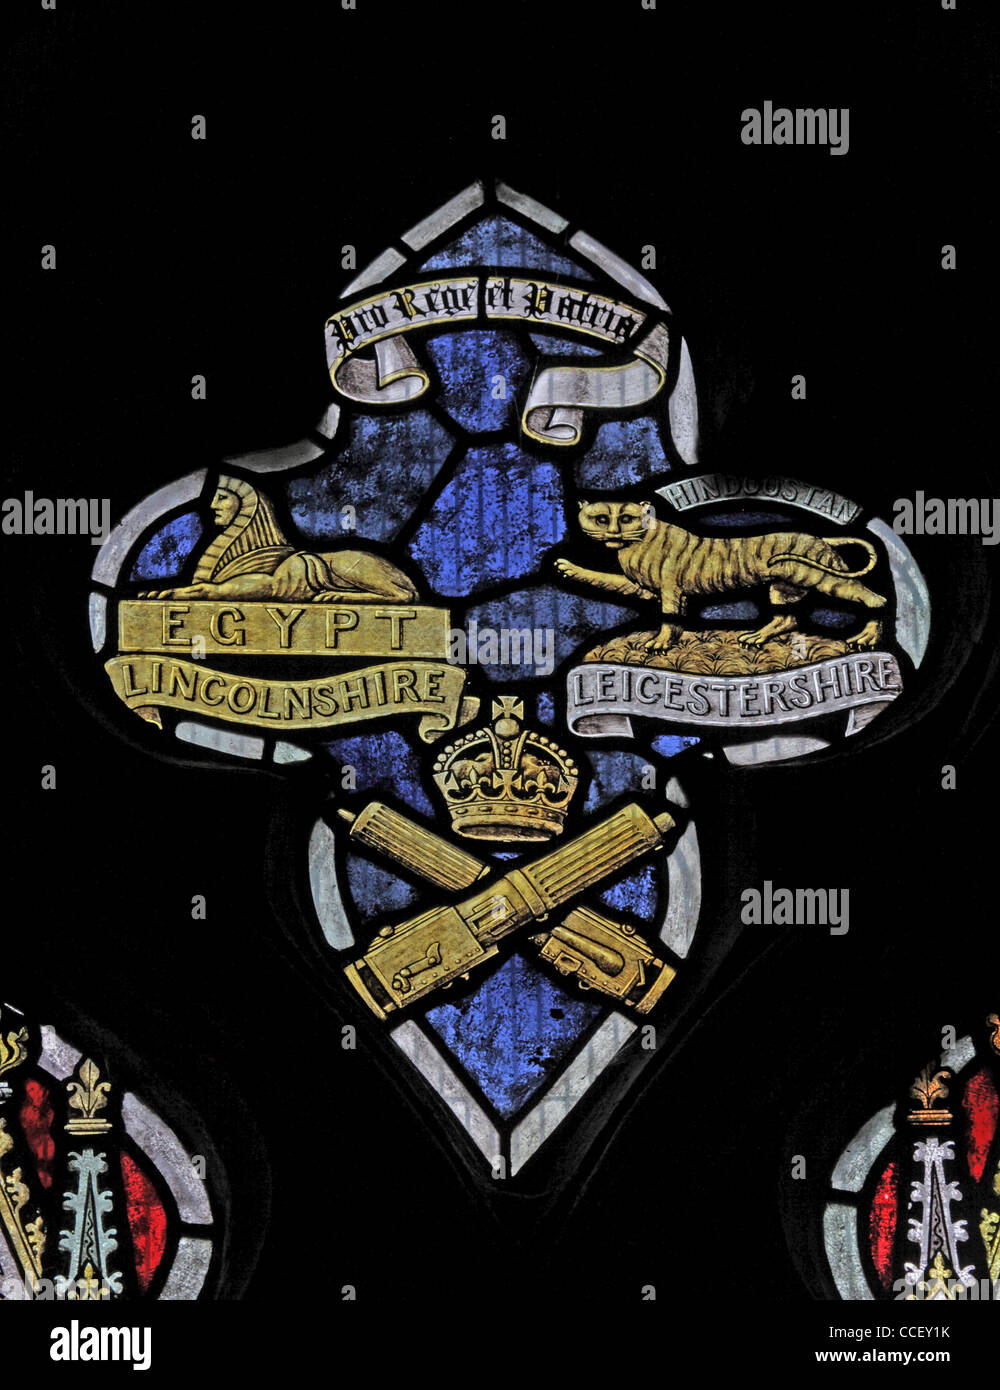 A stained glass window depicting the cap badges of the Lincolnshire and Leicestershire Regiments - Stock Image